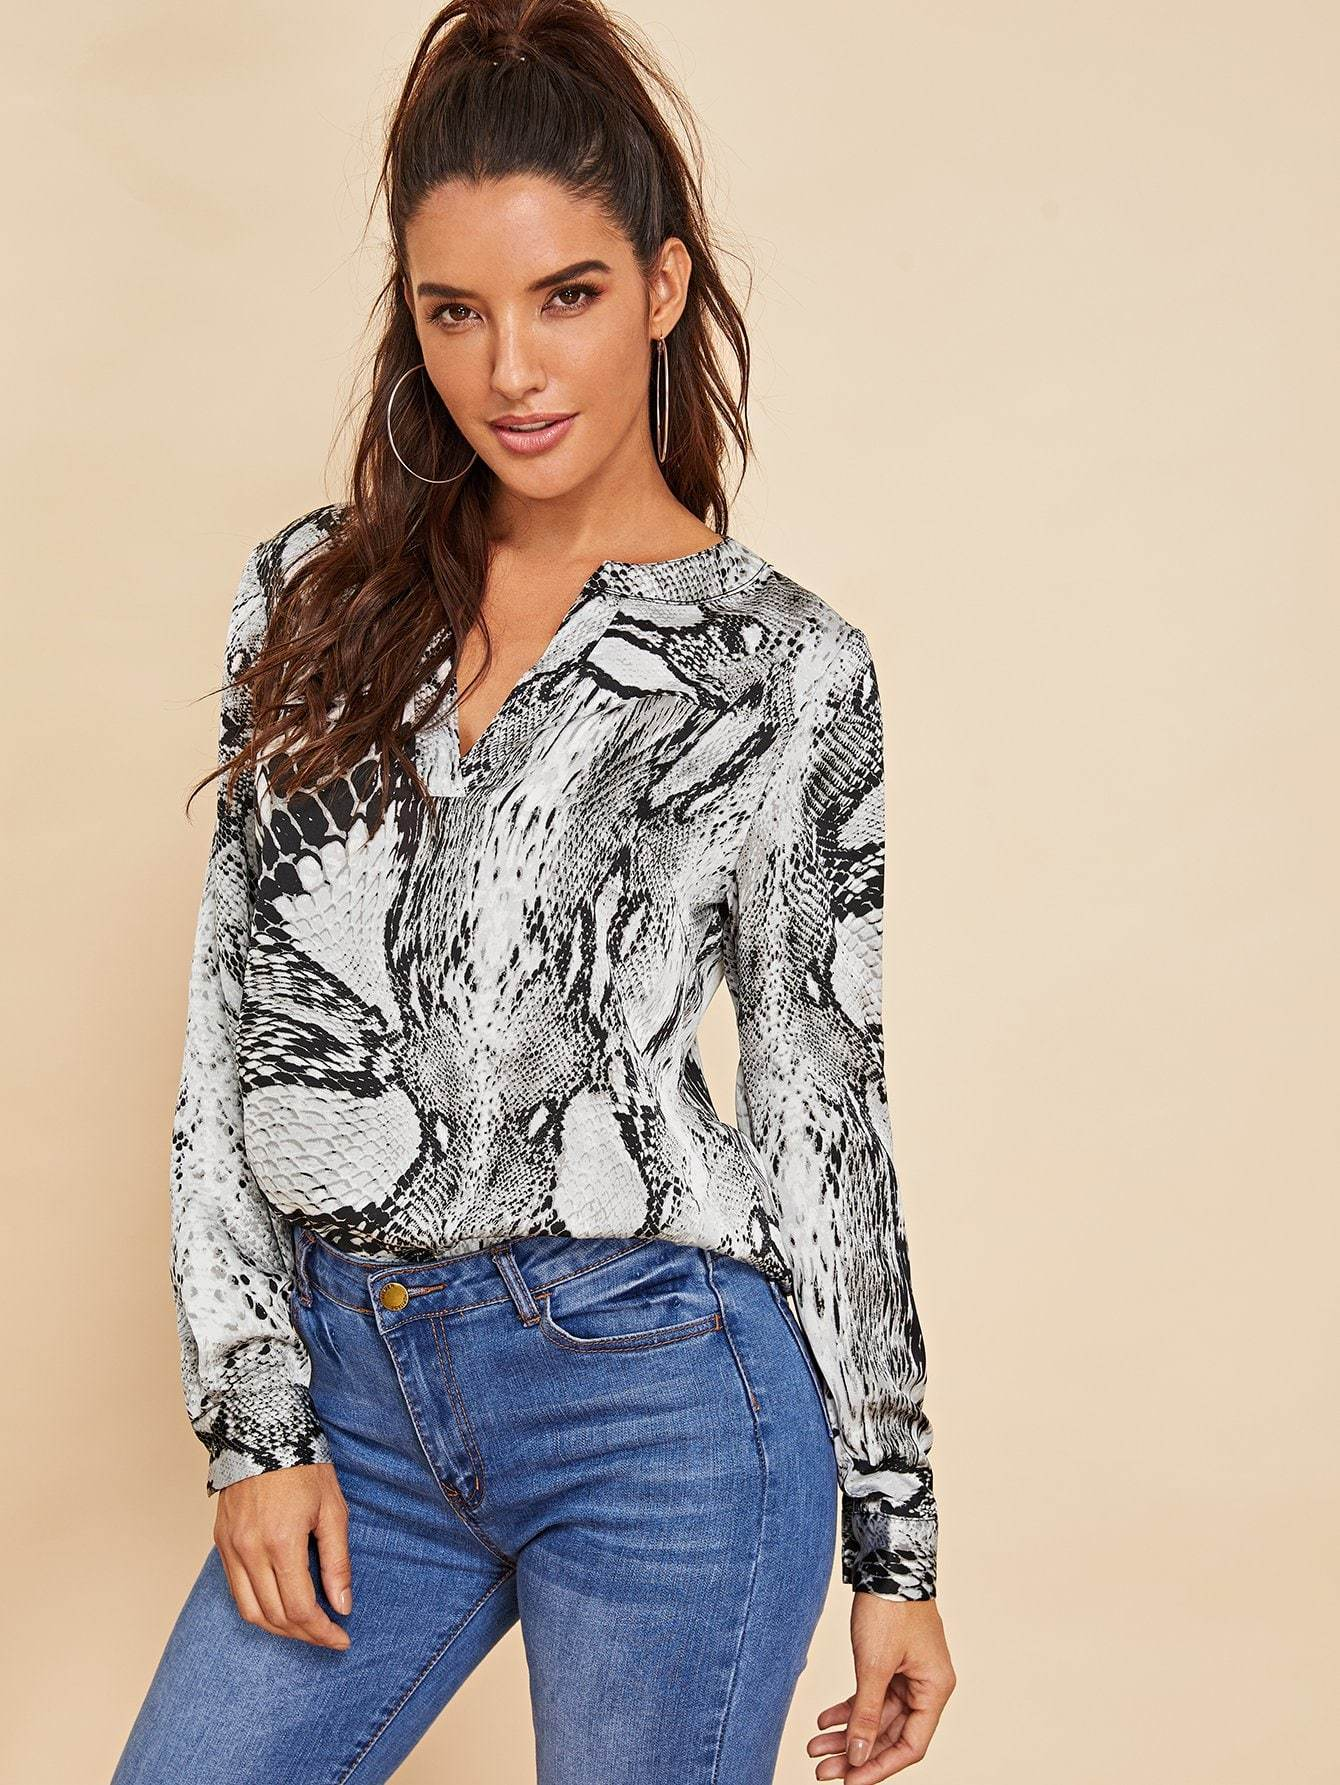 V-Cut Snake Skin Blouse - LoveSylvester